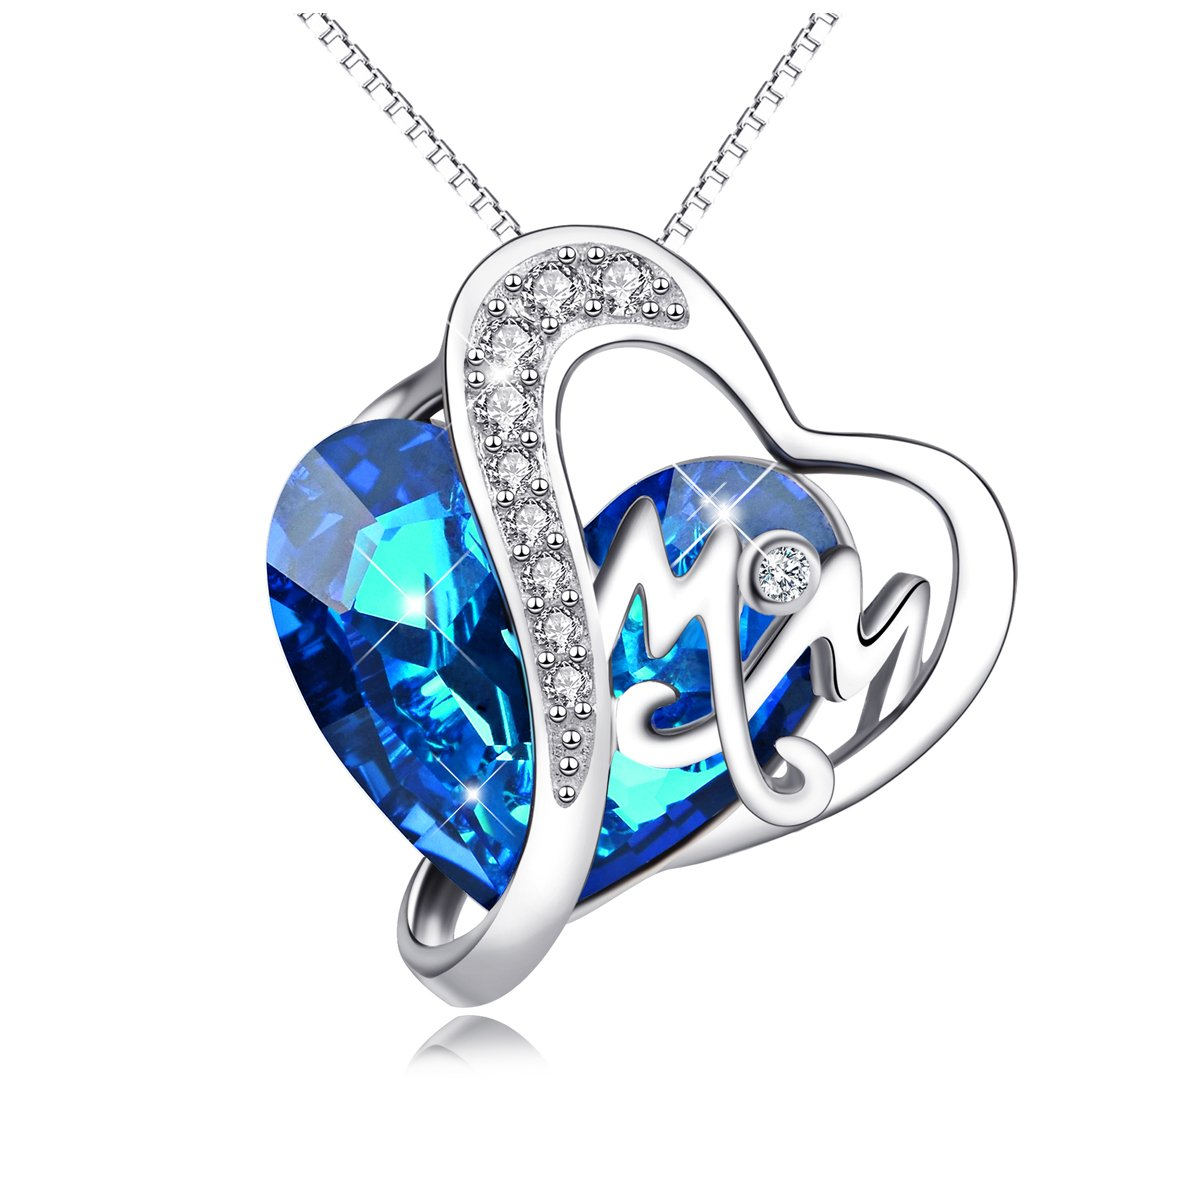 AOBOCO Mom Necklace 925 Sterling Silver Pendant Necklaces with Blue Heart Swarovski Crystals Jewelry for Mom Birthday Gift Mother in law Gifts for Mother-to-be Grandmom